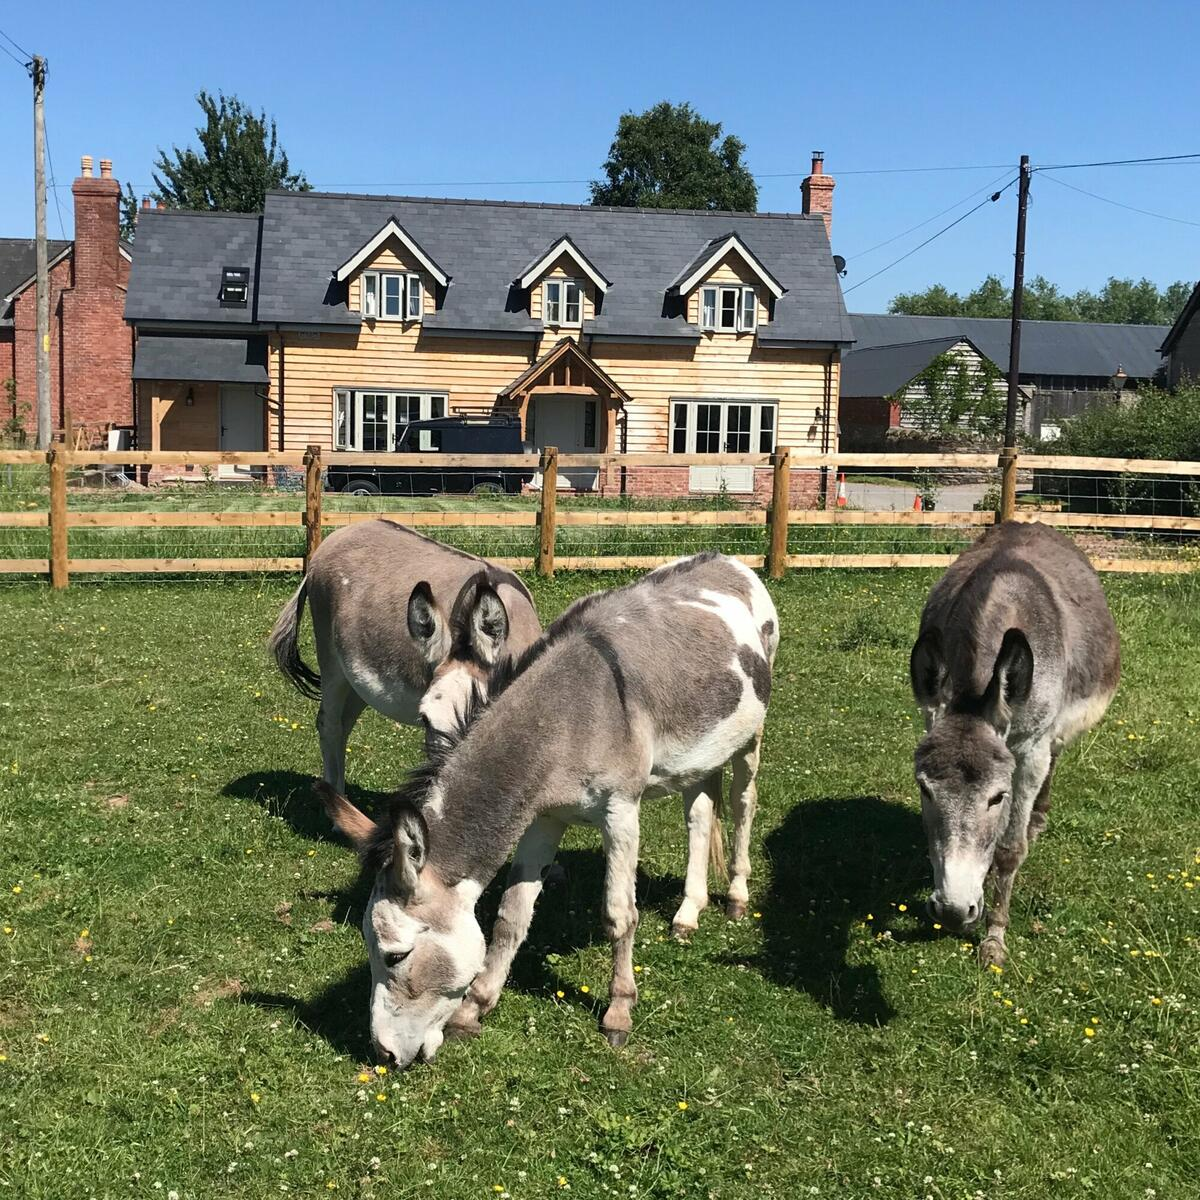 Donkeys and Horses are our neighbours